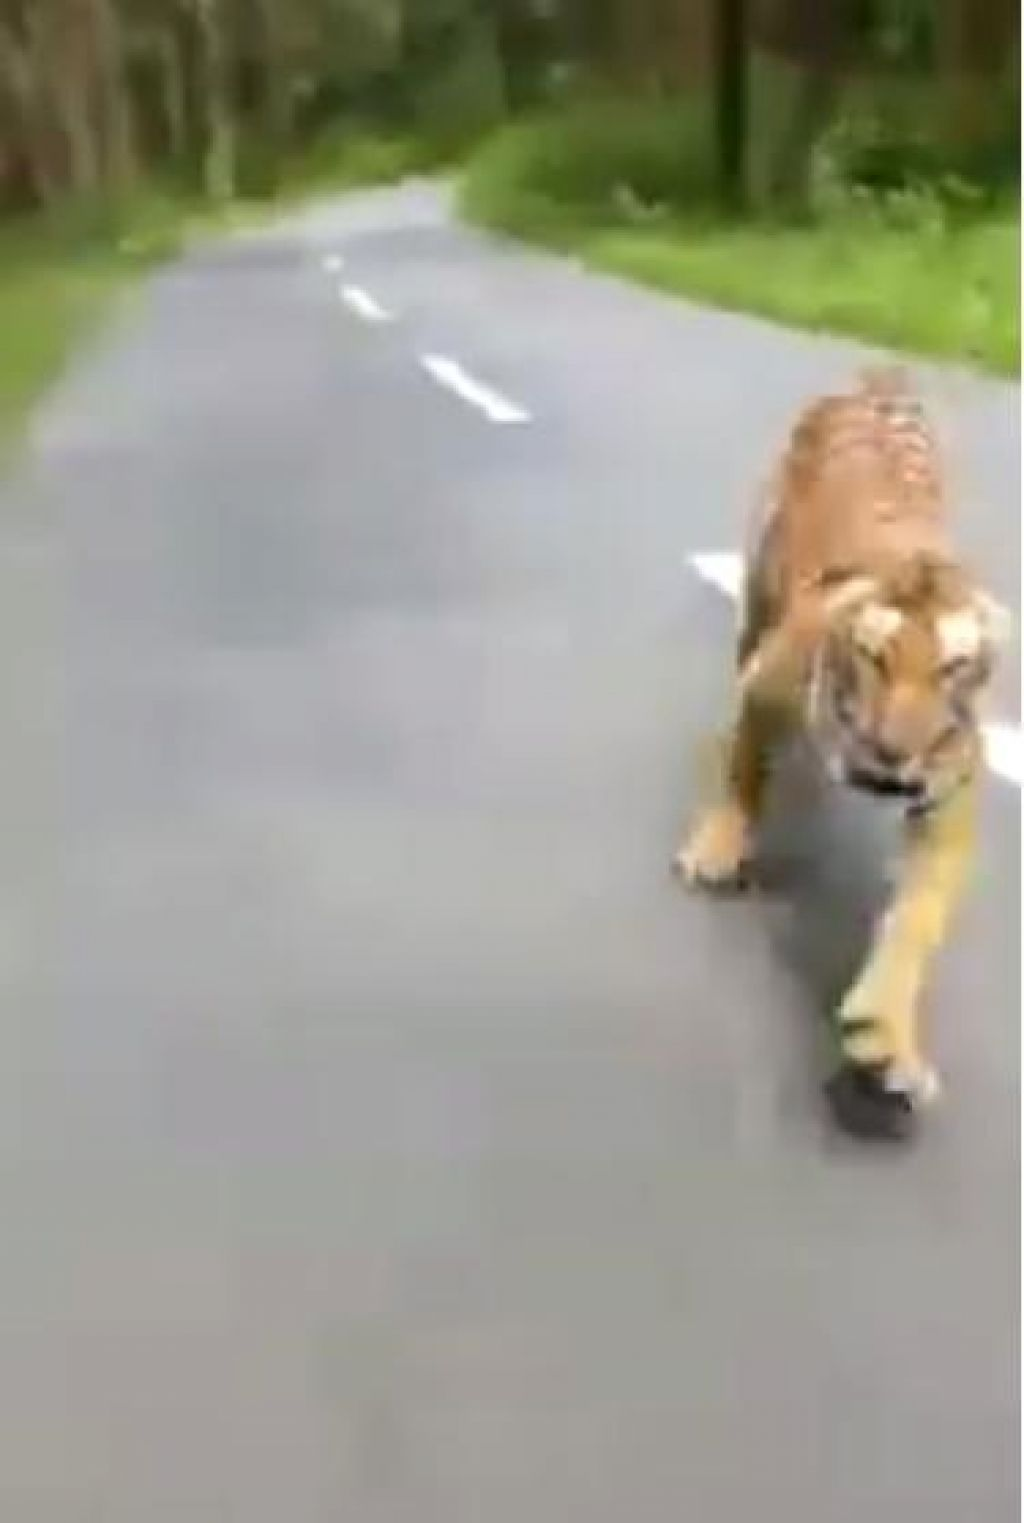 VIDEO: Tiger lovil motorista